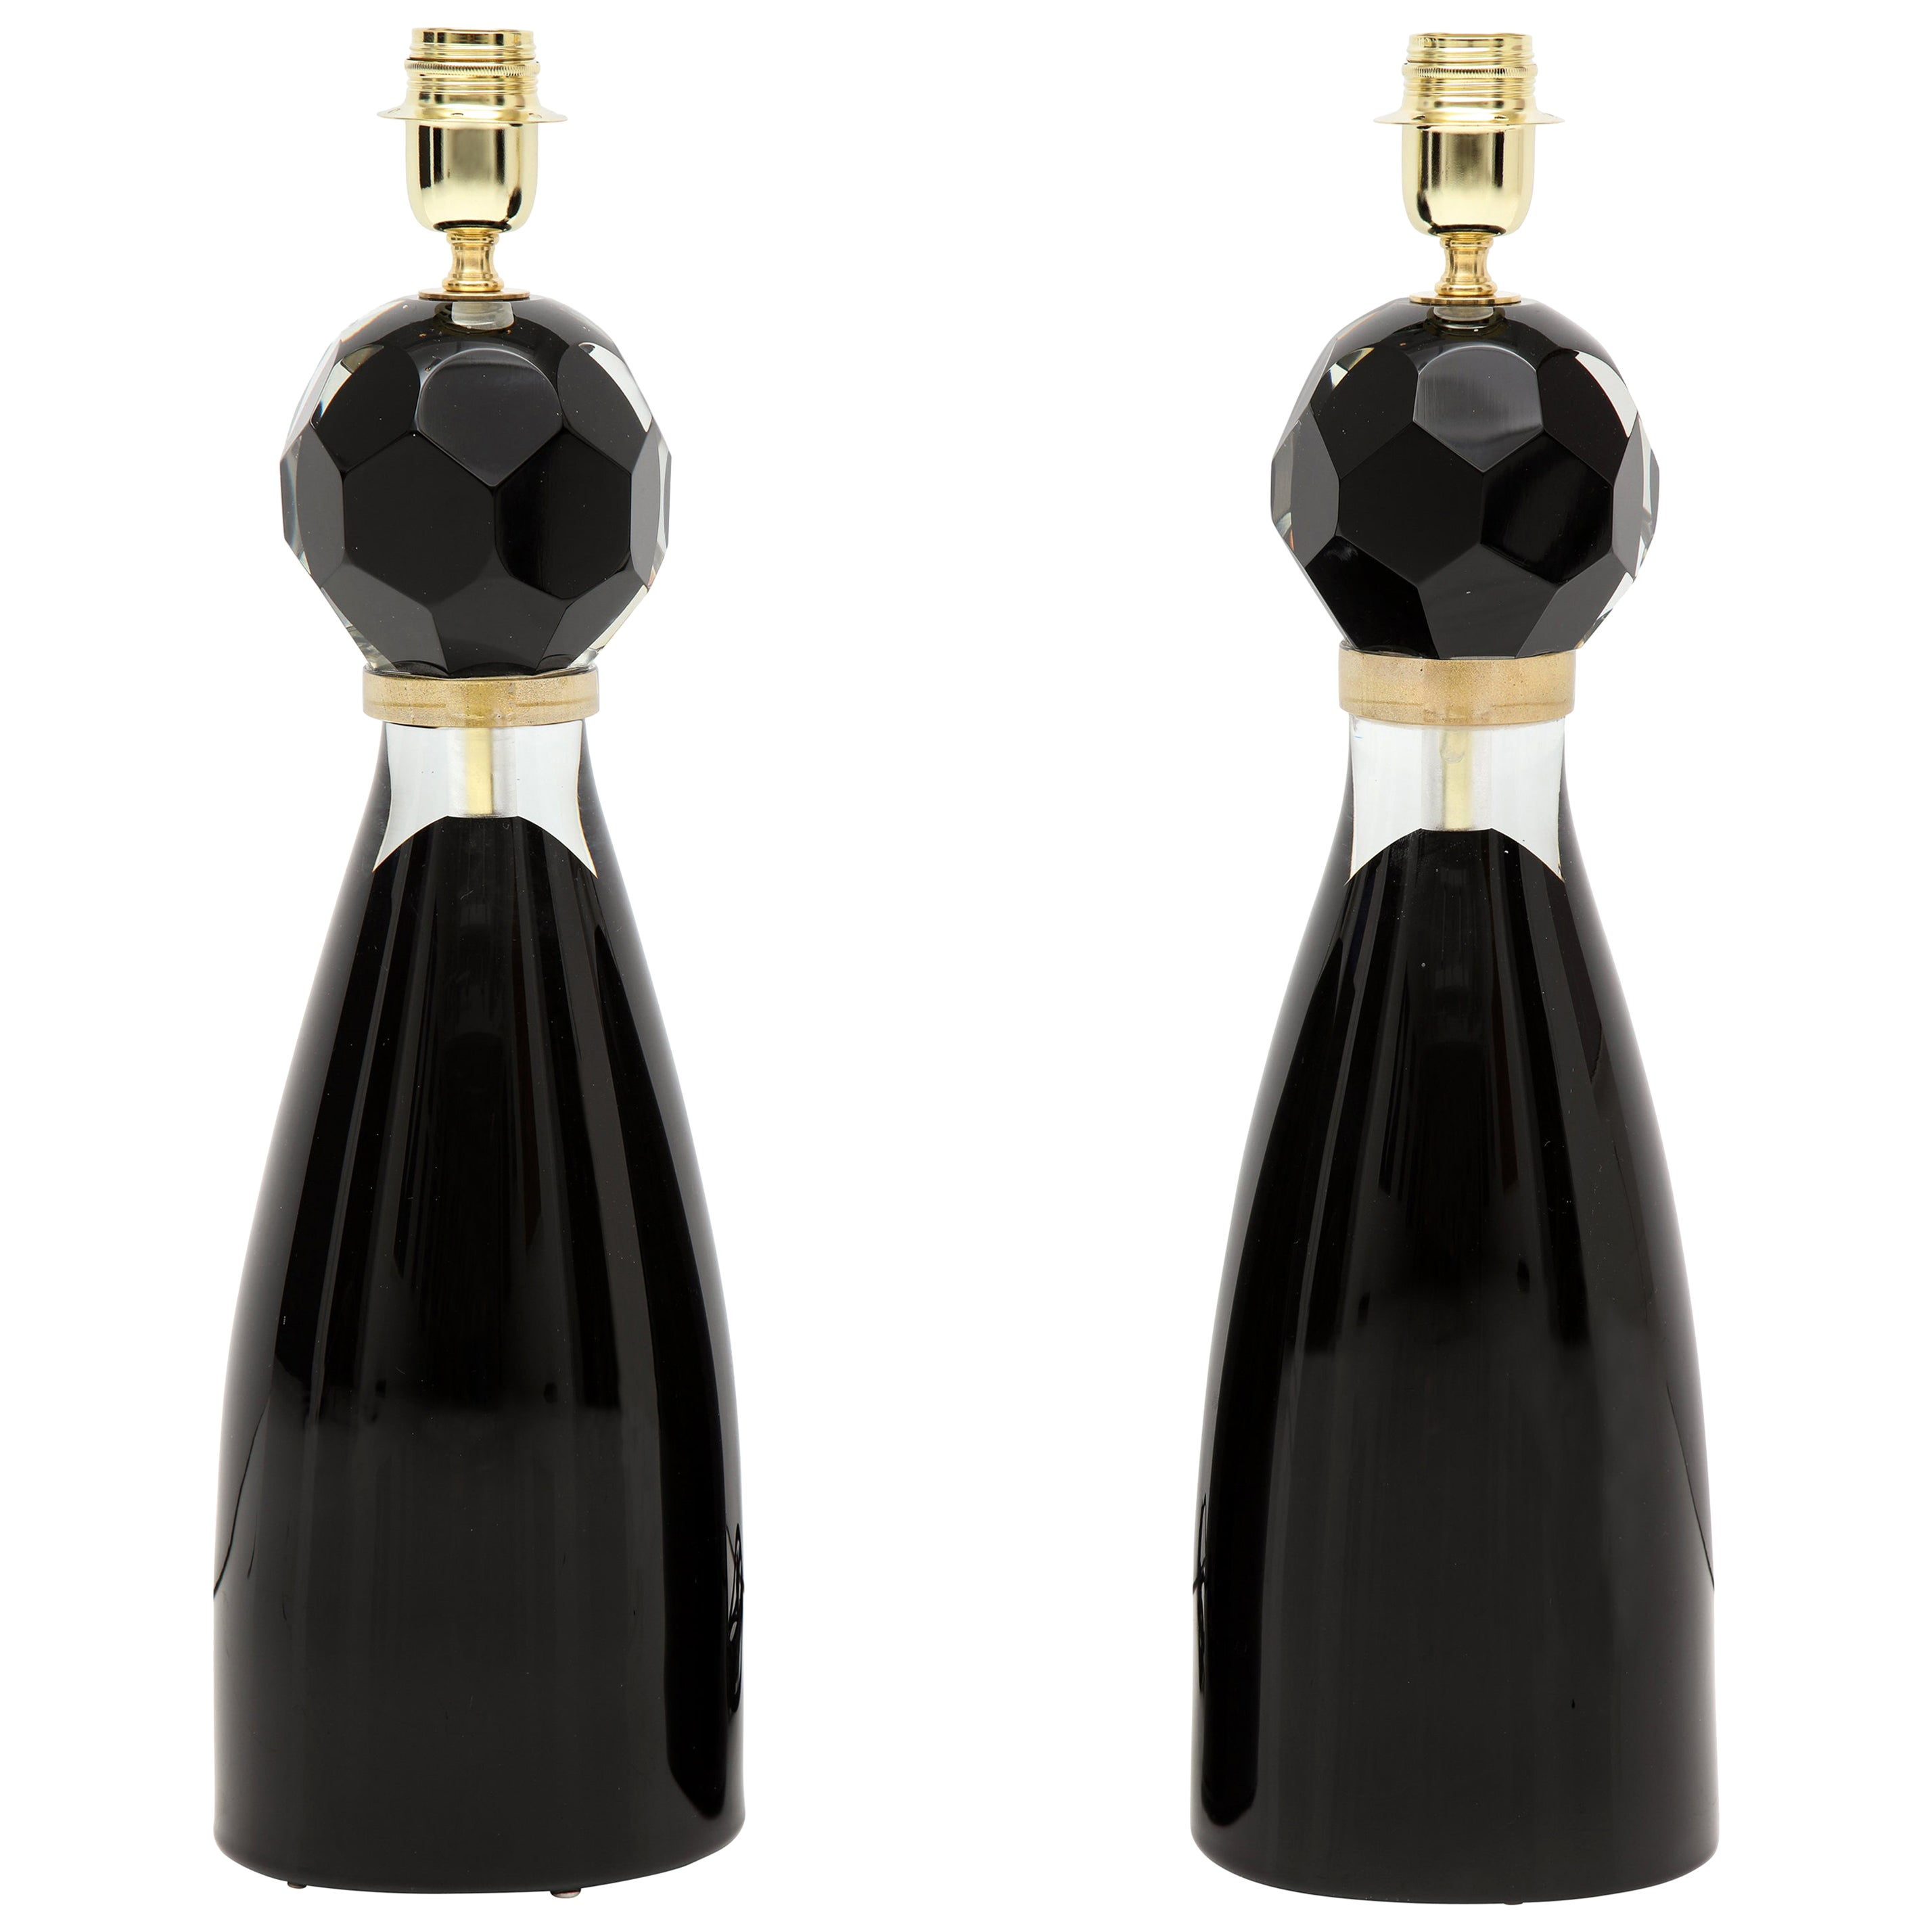 Pair of Handblown Modern Black and Gold Murano Glass Lamps, Italy, Signed